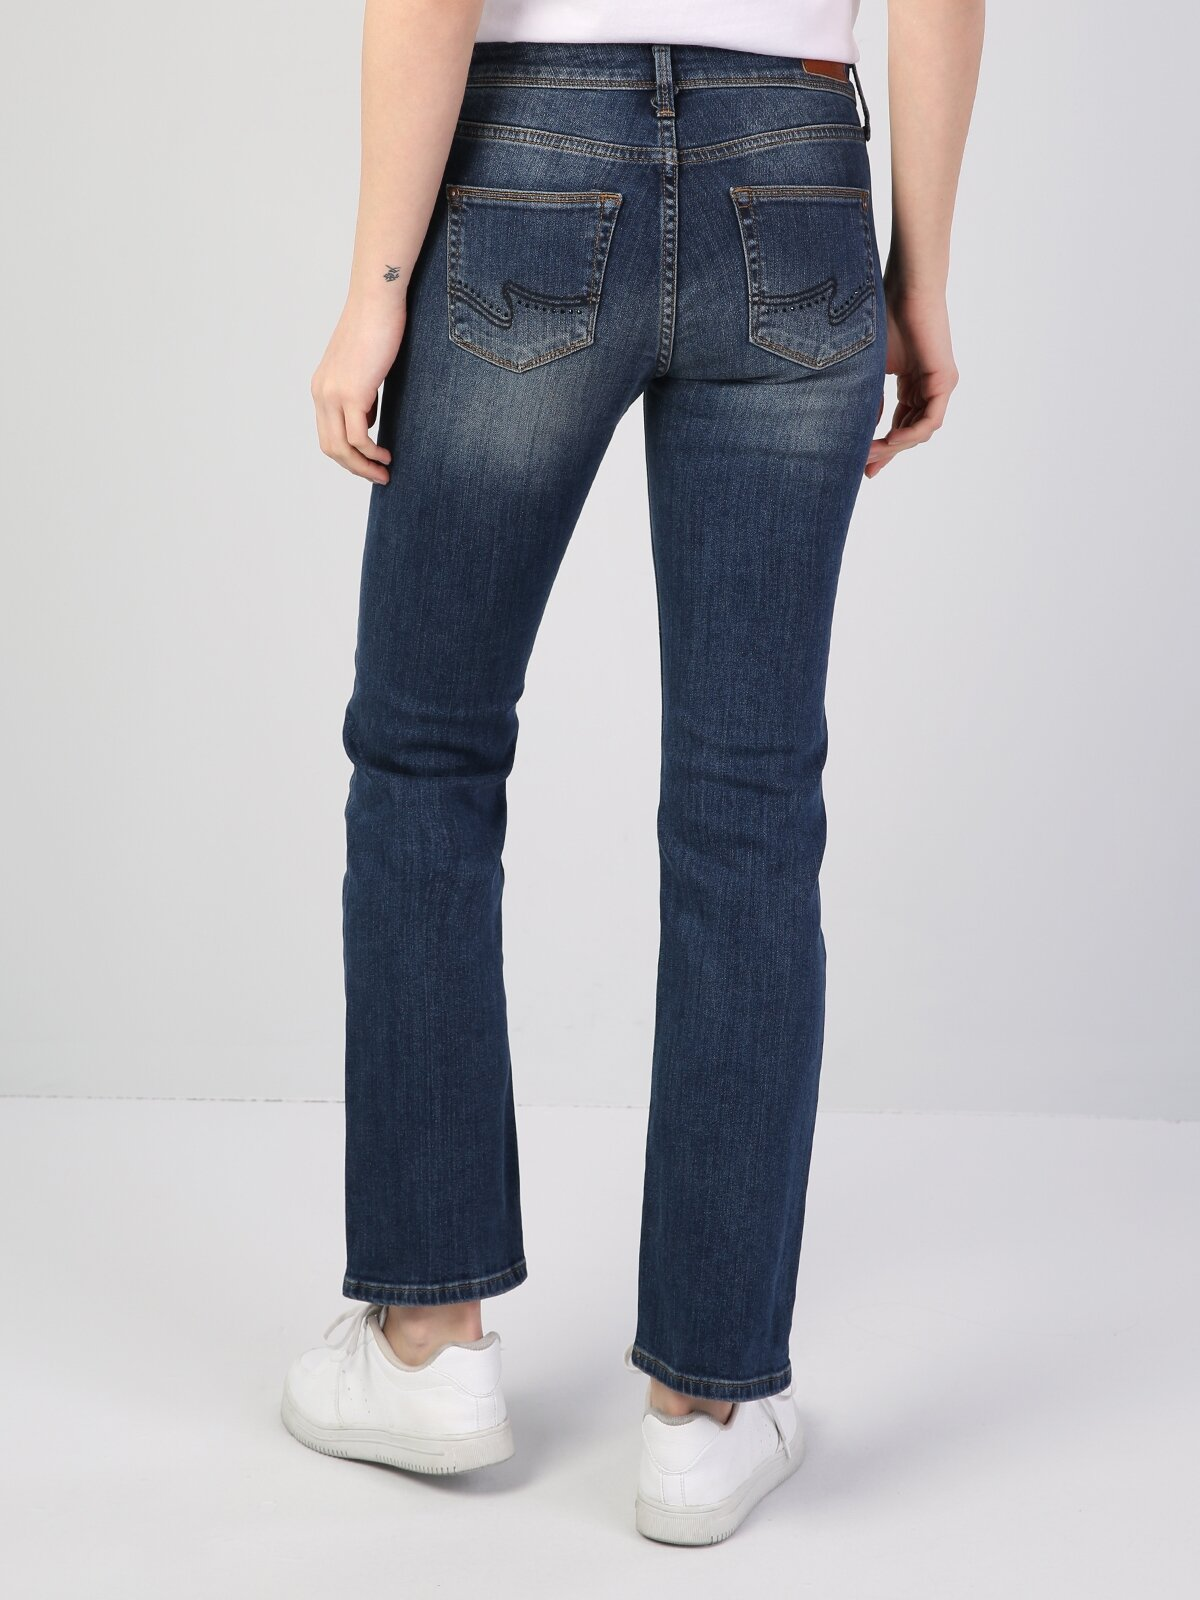 792 Mila Normal Kesim   Denim Jean Pantolon